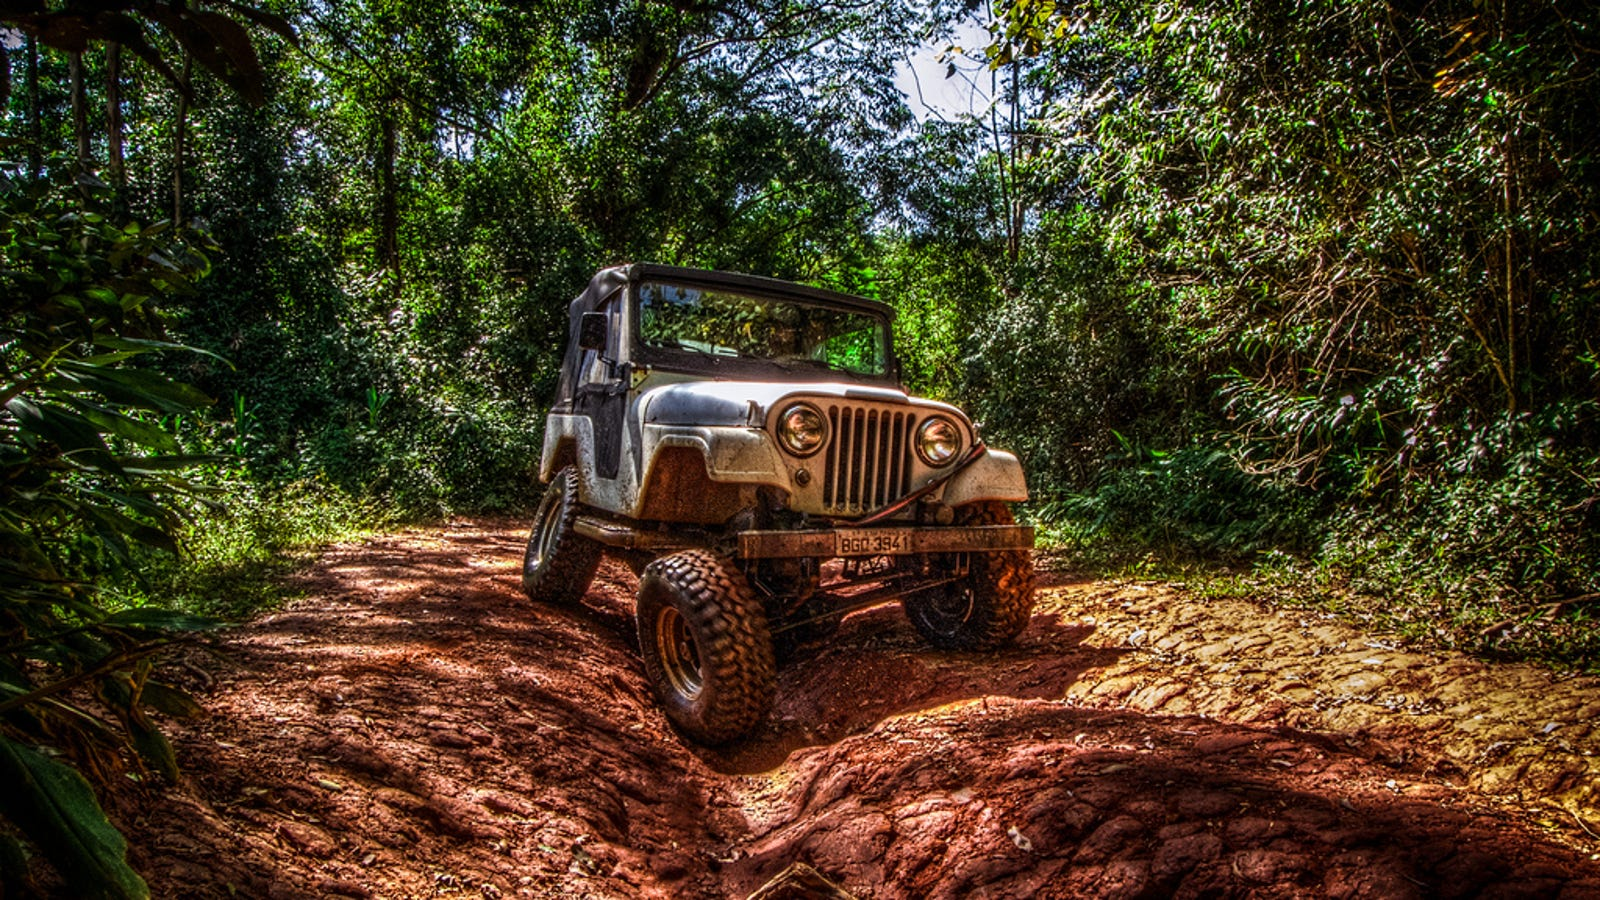 This Is What Makes A Vehicle Unstoppable Off-Road